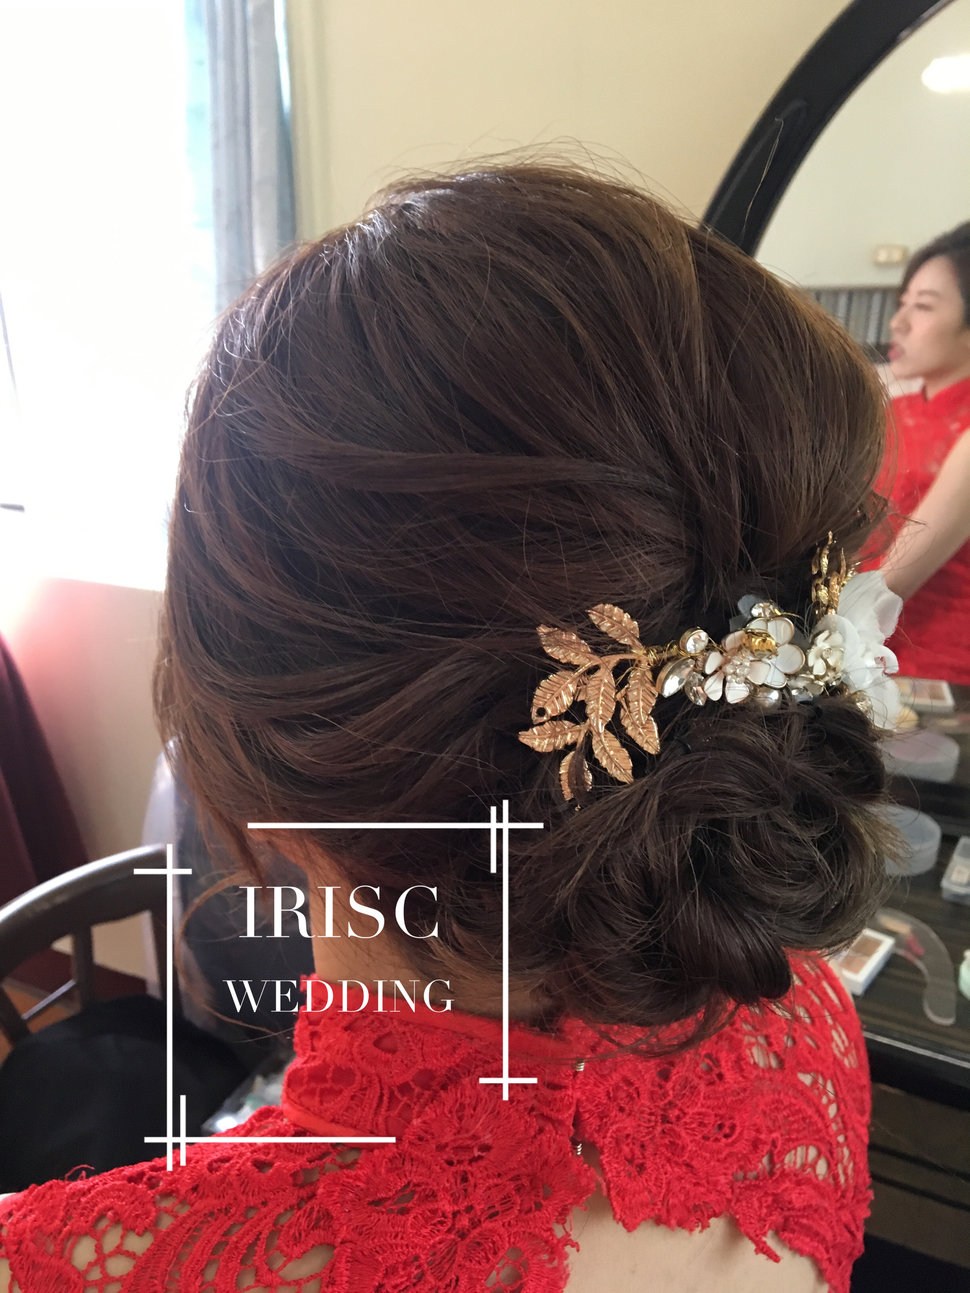 IMG_9518 - IRISC WEDDING - 結婚吧